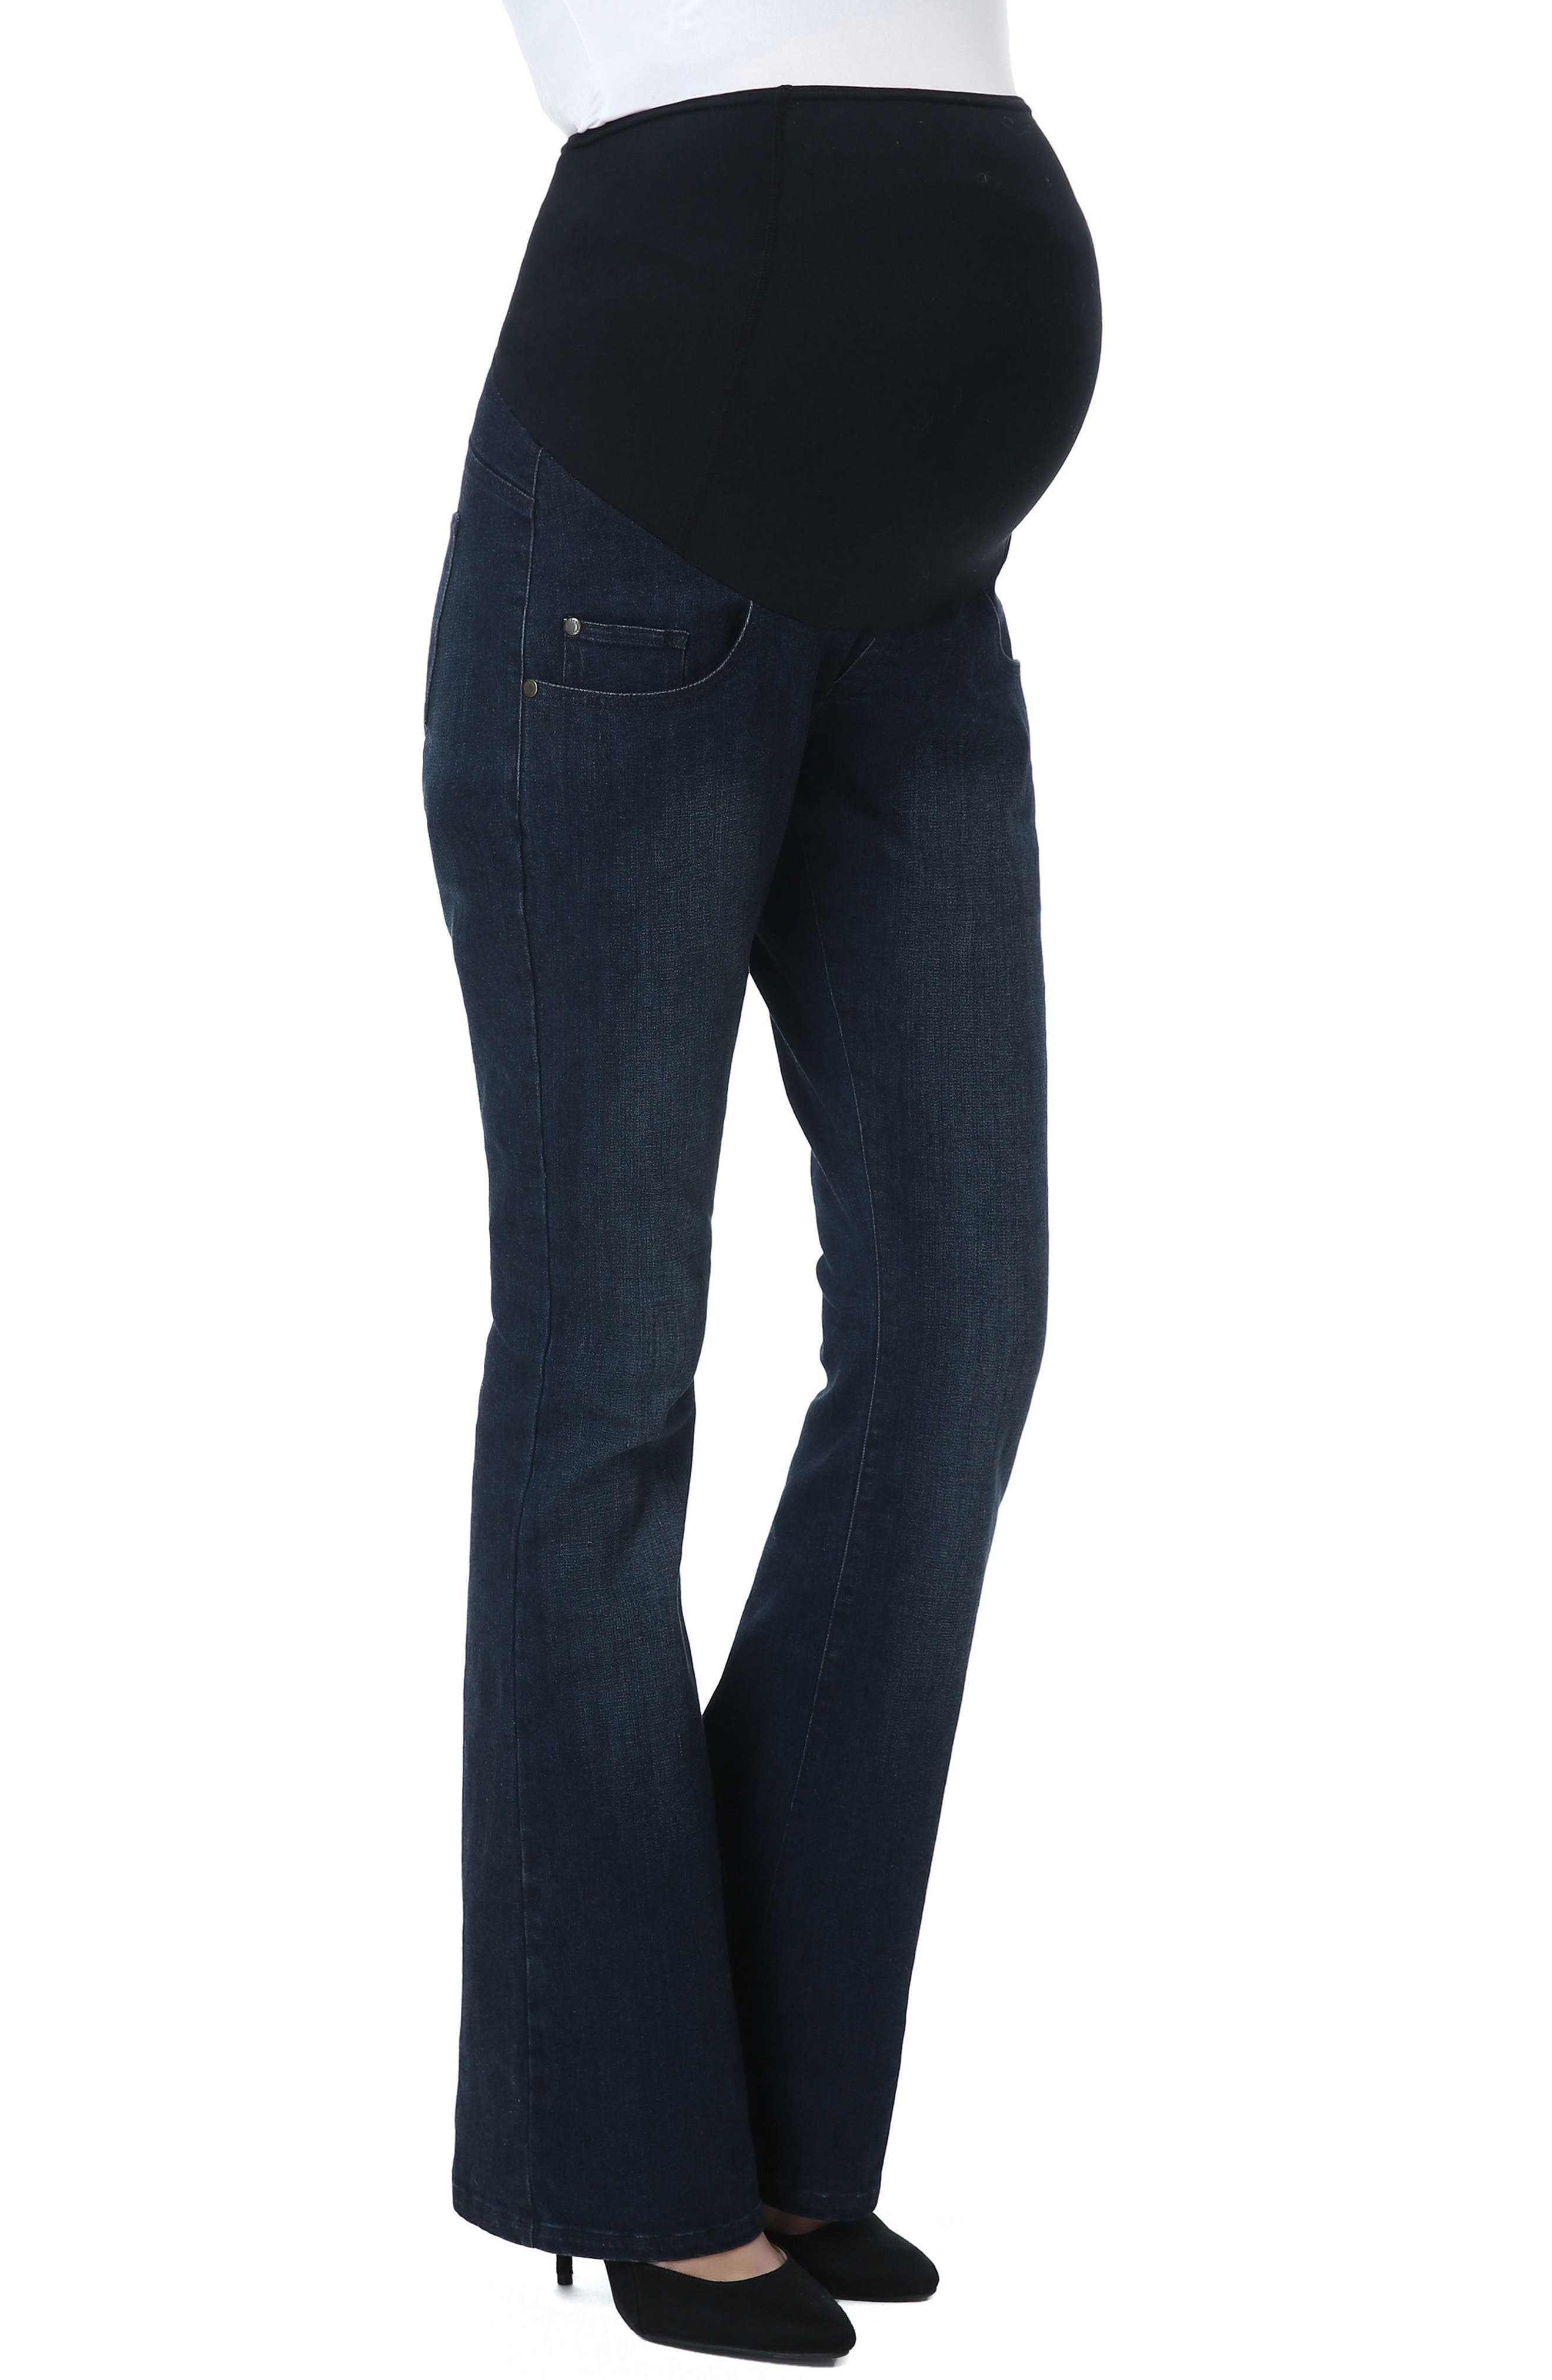 Leni Maternity Bootcut Jeans,                             Main thumbnail 1, color,                             010